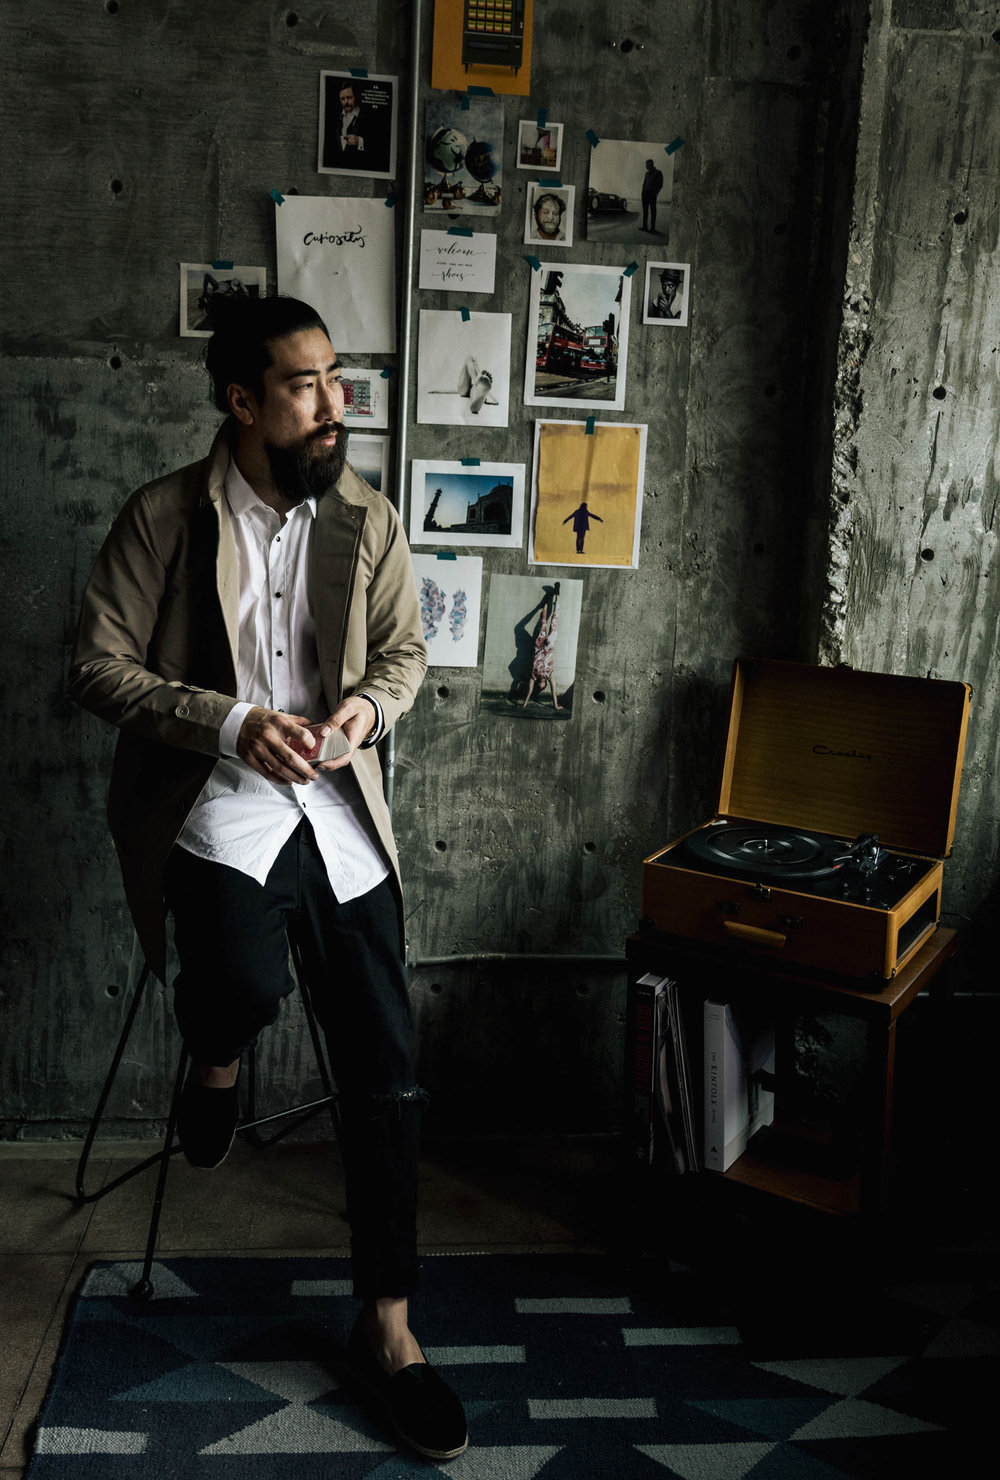 justfeng ryan feng asian beard dapper ootdmen gq style streetstyle hipster fashion